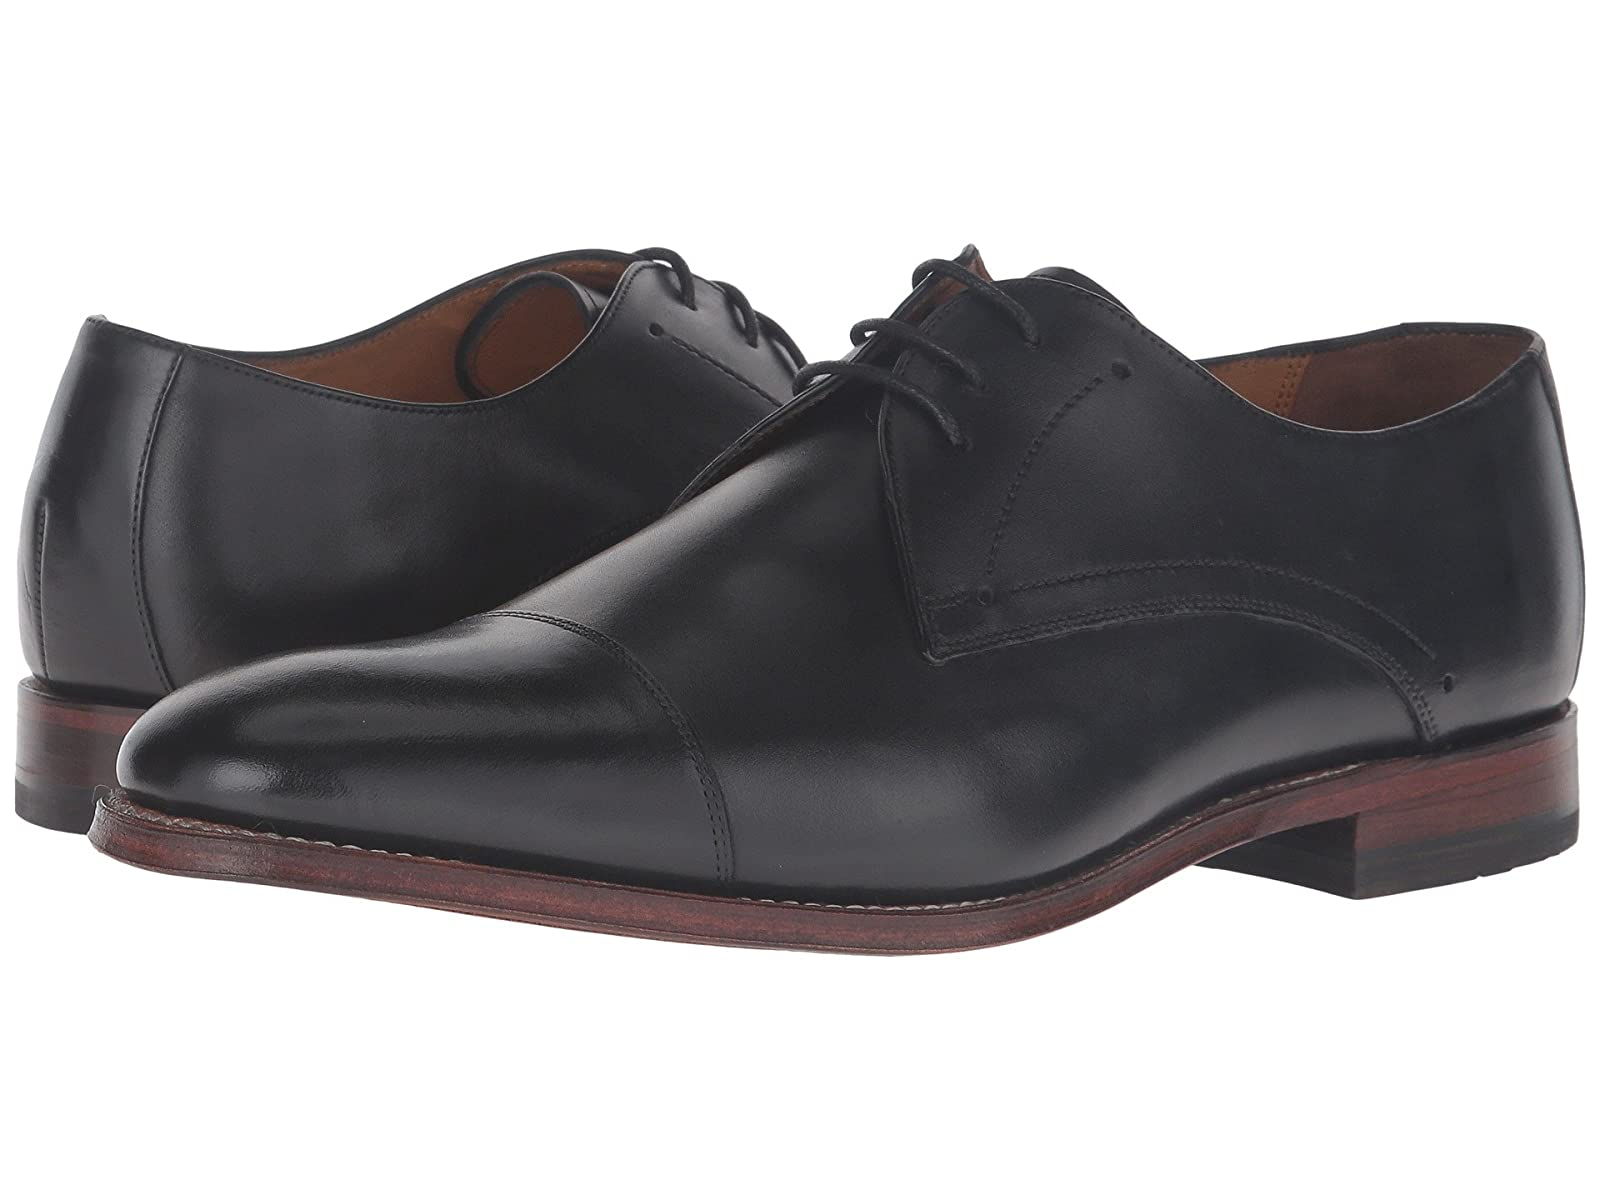 Stacy Adams Madison II Cap Toe LaceCheap and distinctive eye-catching shoes